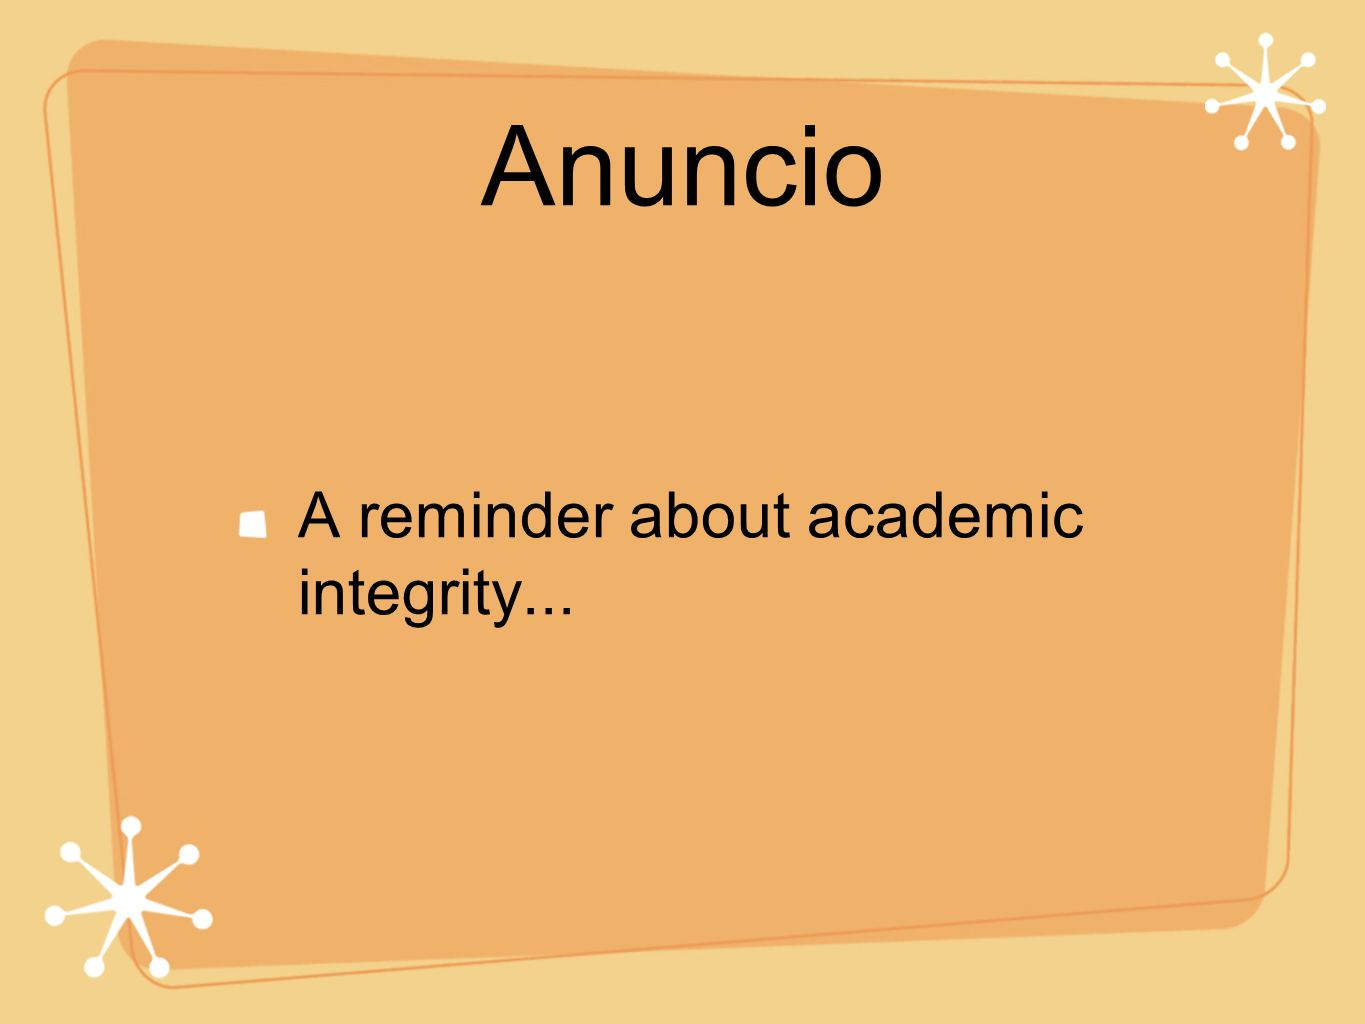 Anuncio A reminder about academic integrity...